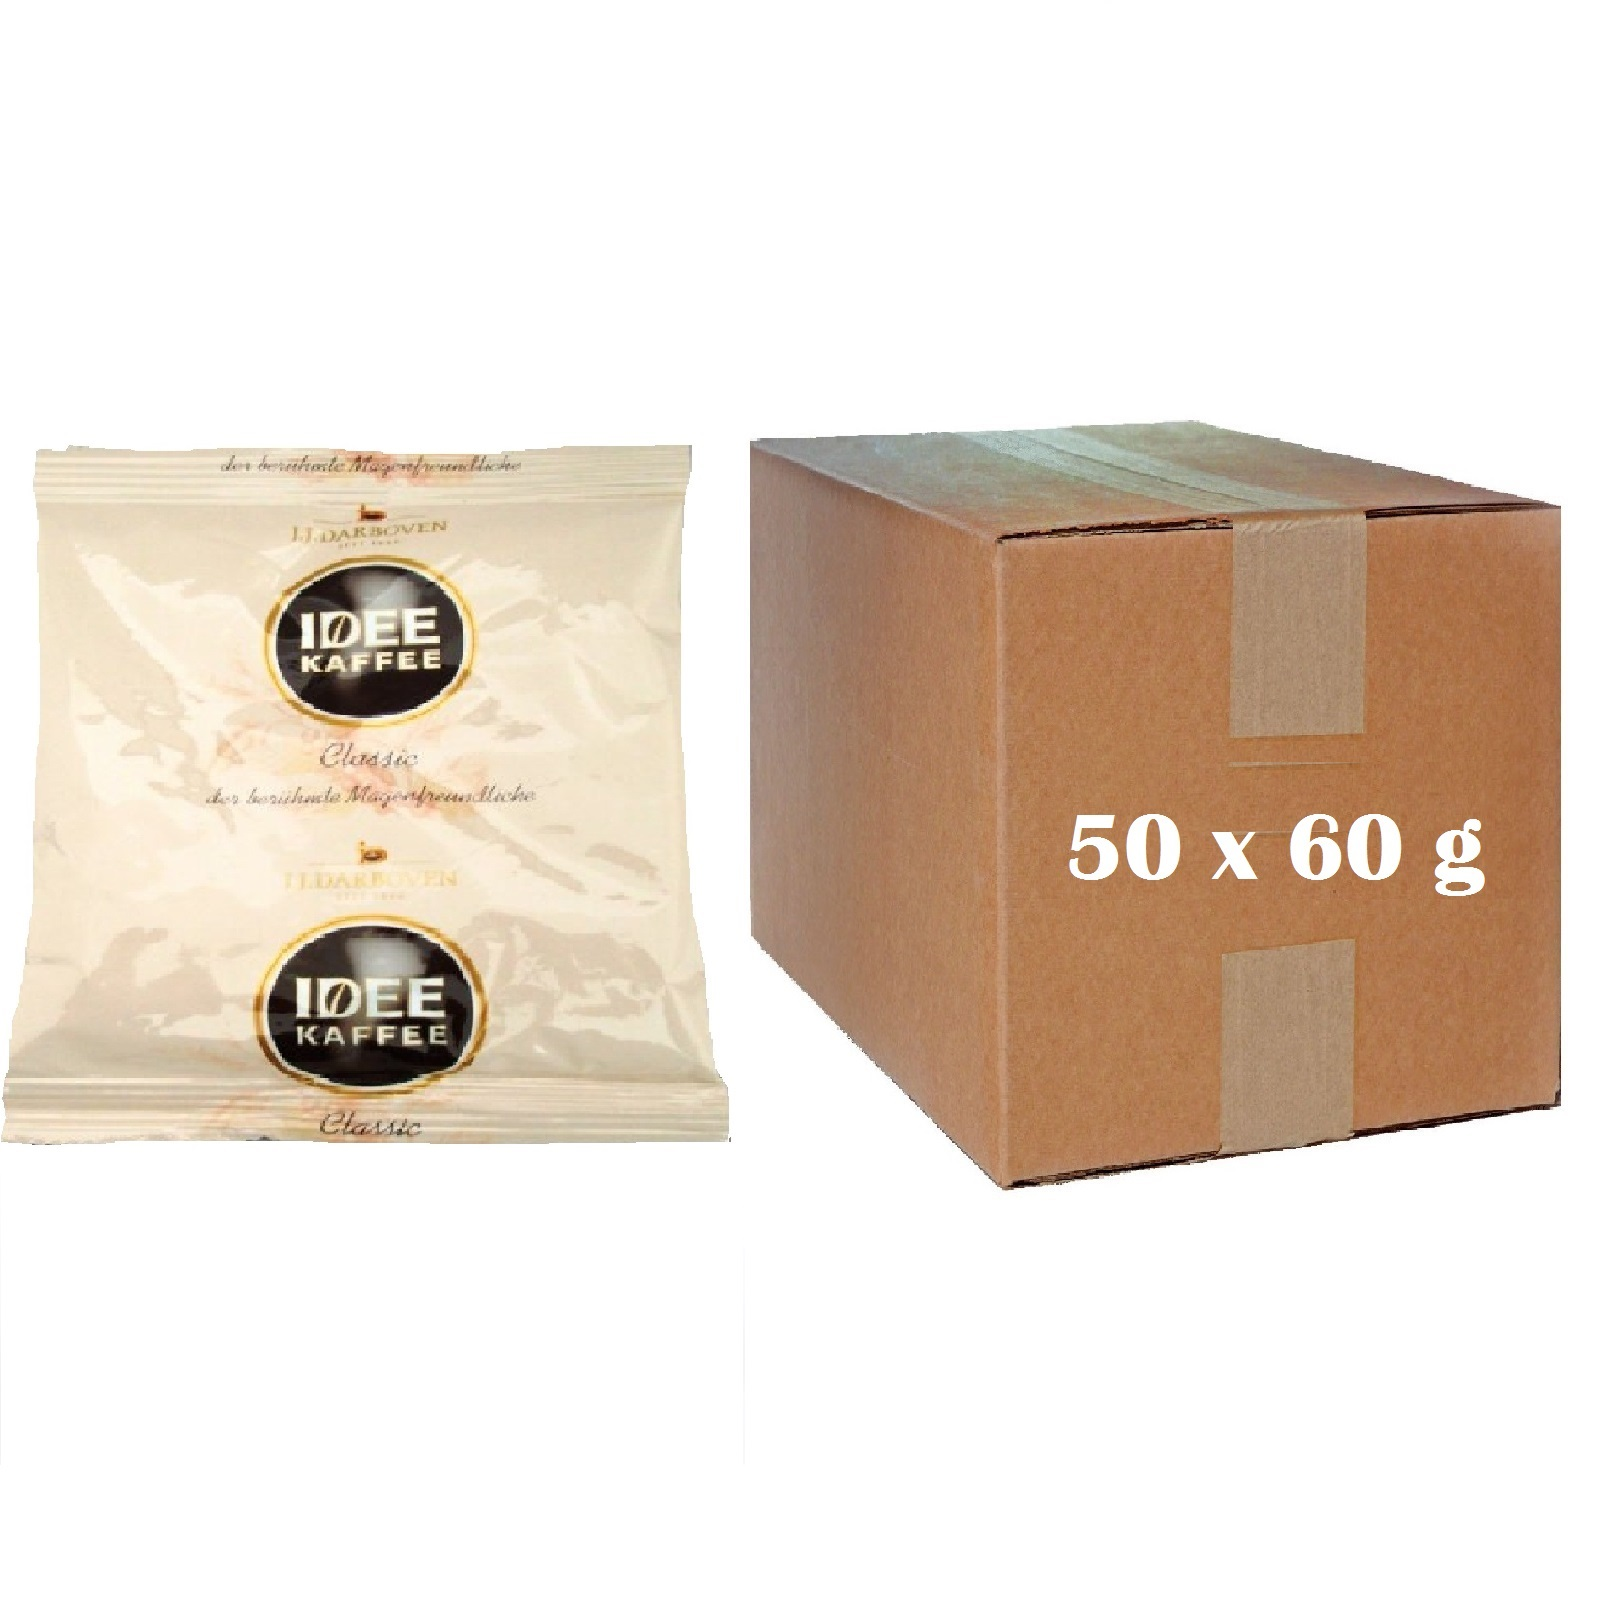 idee kaffee classic pouch 50 x 60g von darboven 50 x 60 g. Black Bedroom Furniture Sets. Home Design Ideas